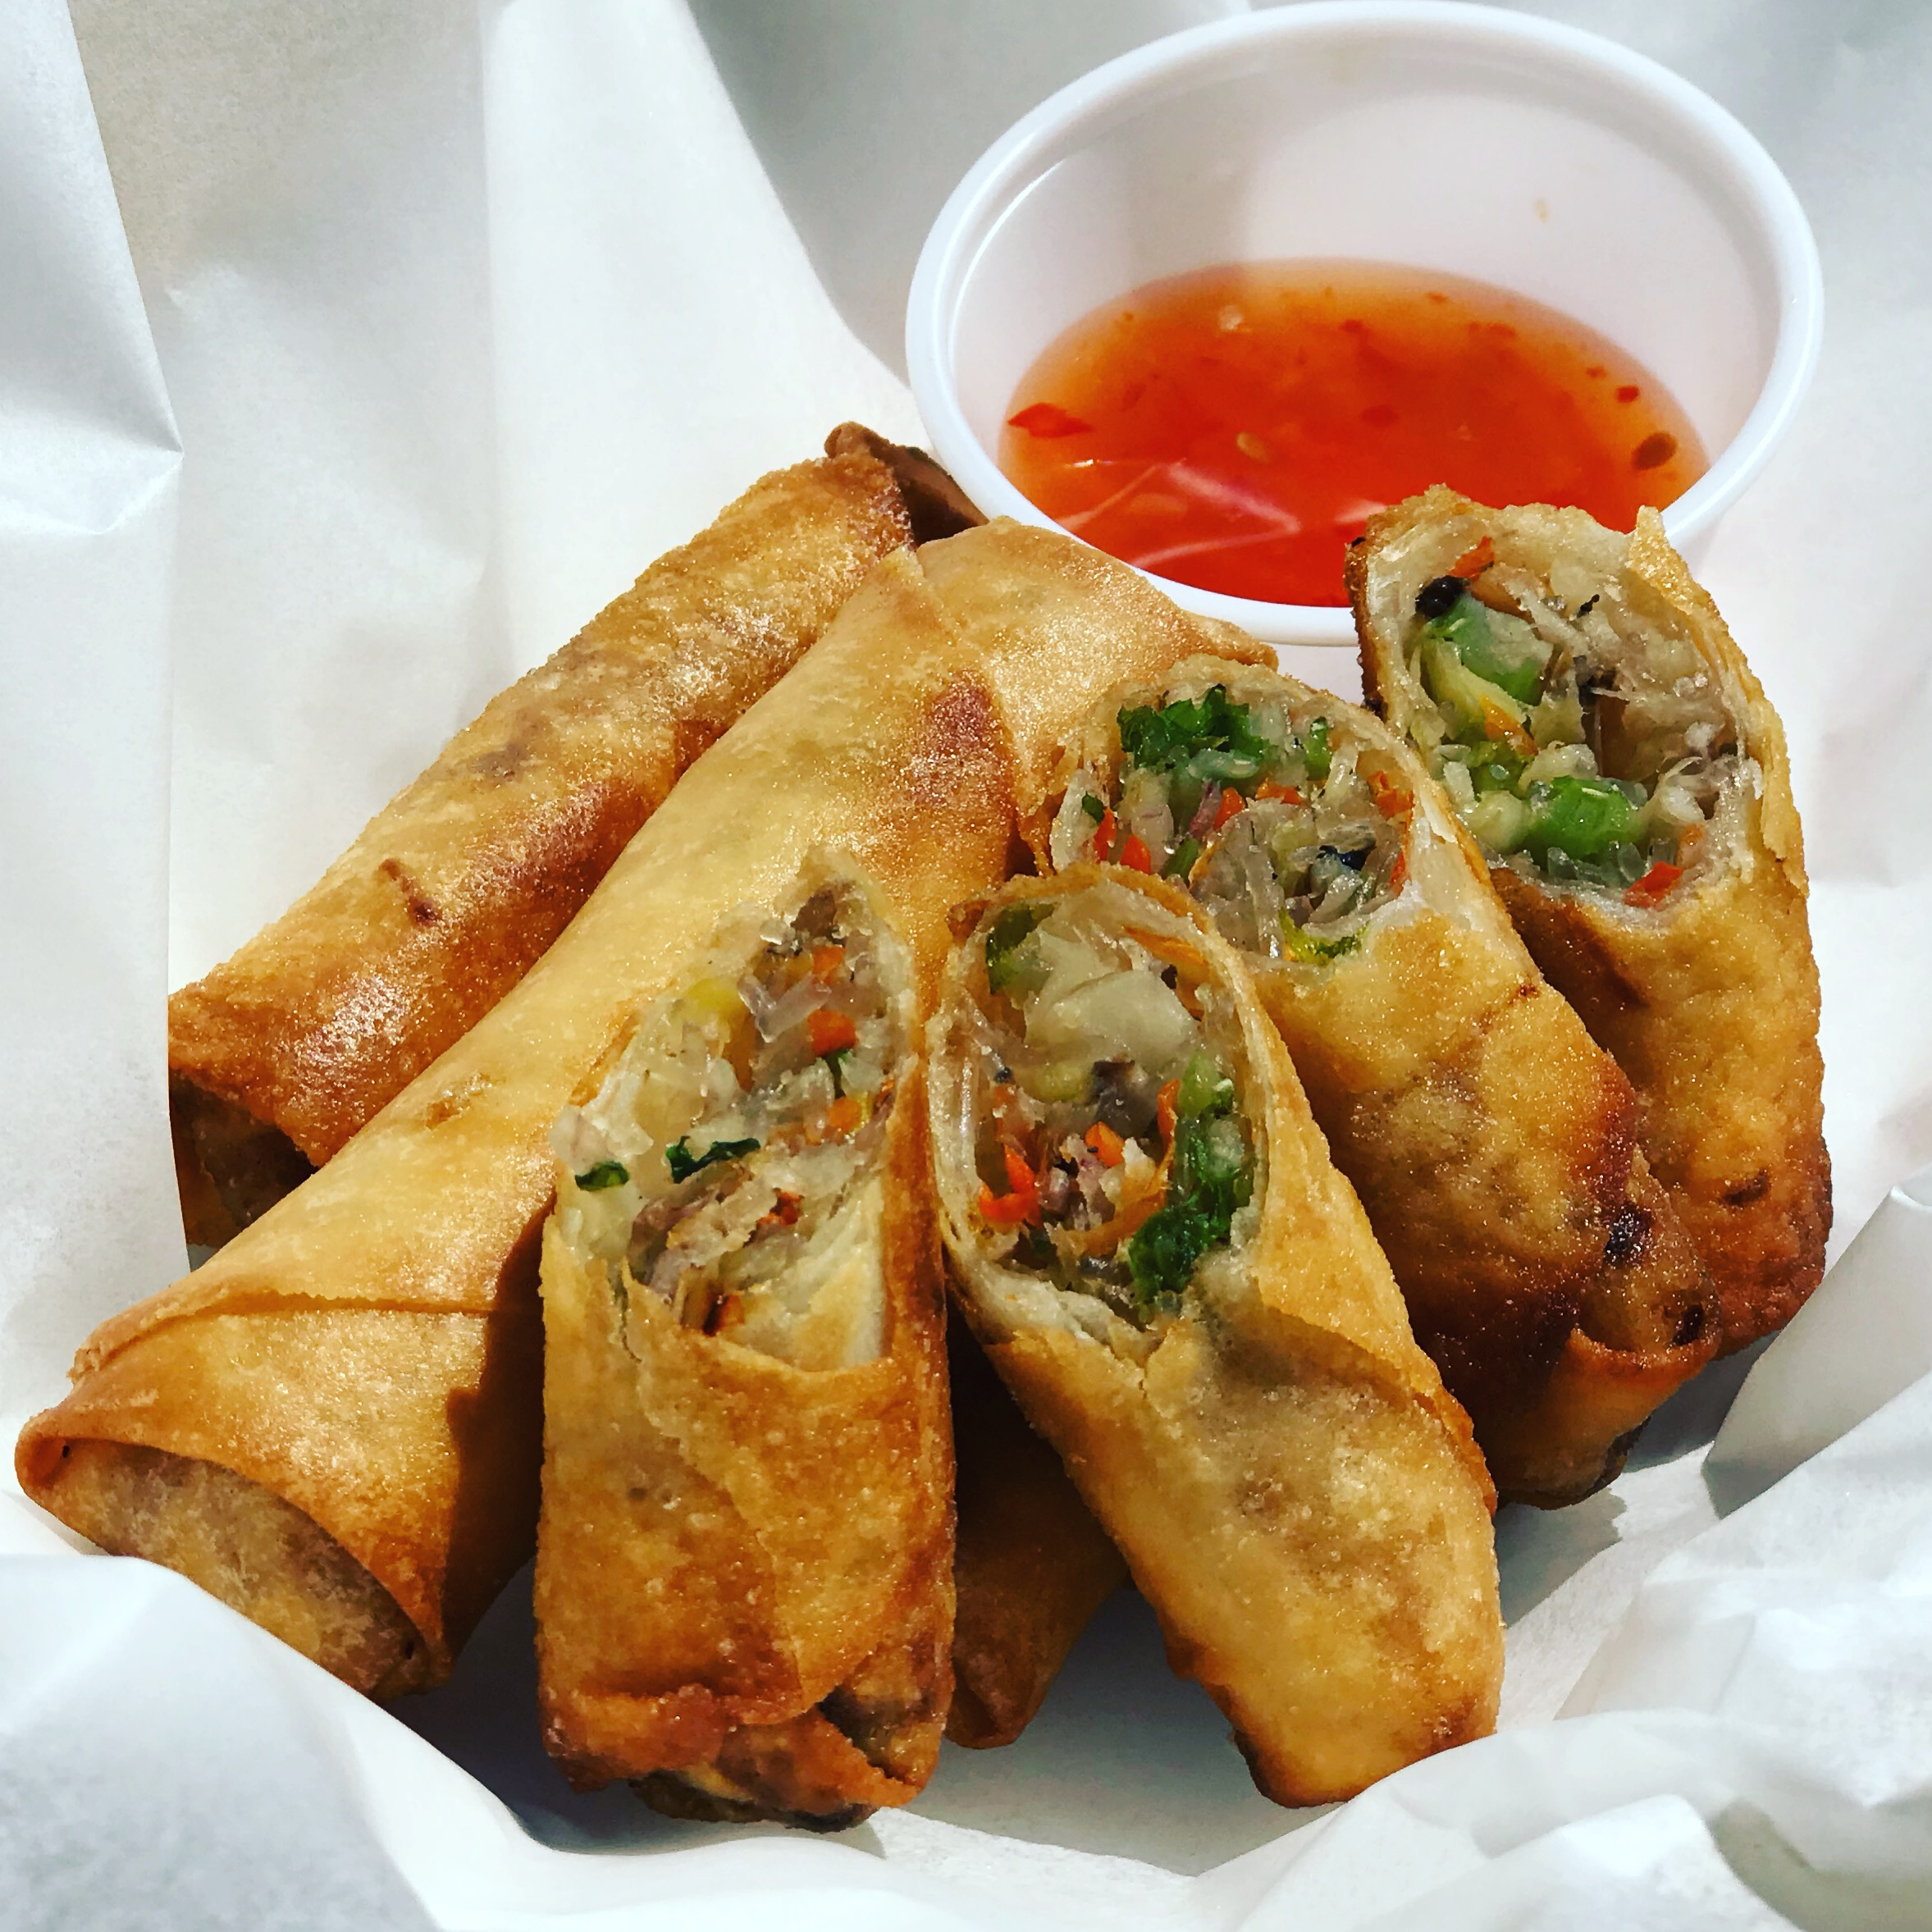 Vegetable Spring Rolls with Sweet & Sour Sauce - 4 for $4 (or 1 for $1.25)  Ingredients: chopped Taro, cabbage, carrots, clear noodles wrapped in a crispy wonton wrap.